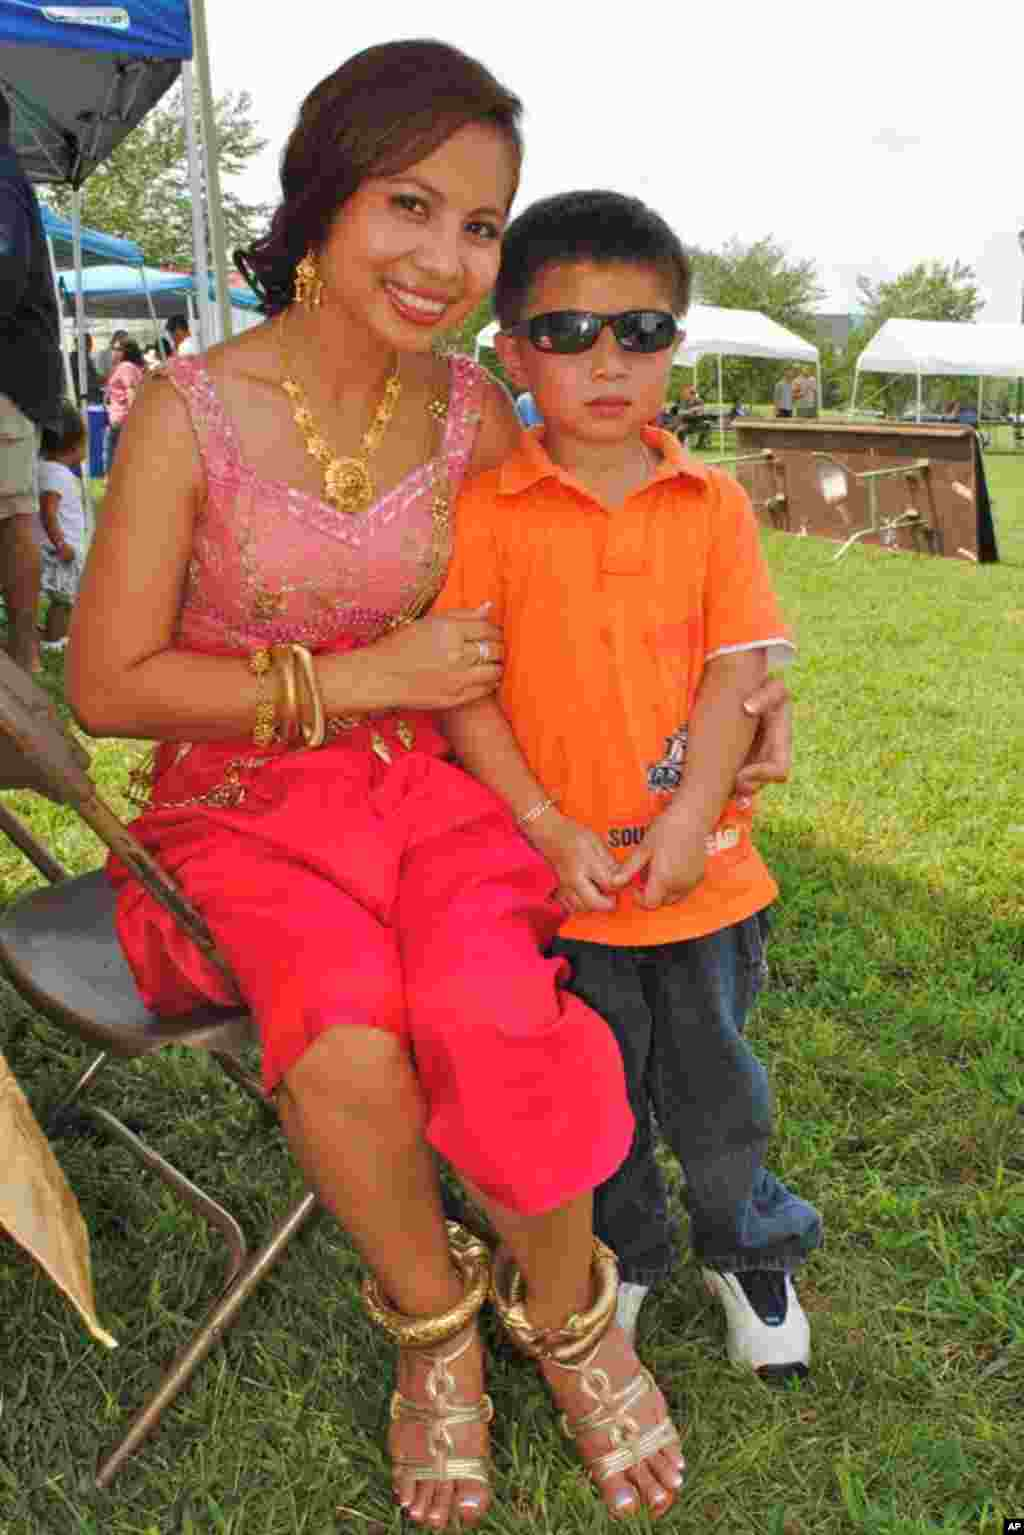 Darath Ly, dressed in Cambodian wedding costume, and her four-year-old son, Aaron Ly.